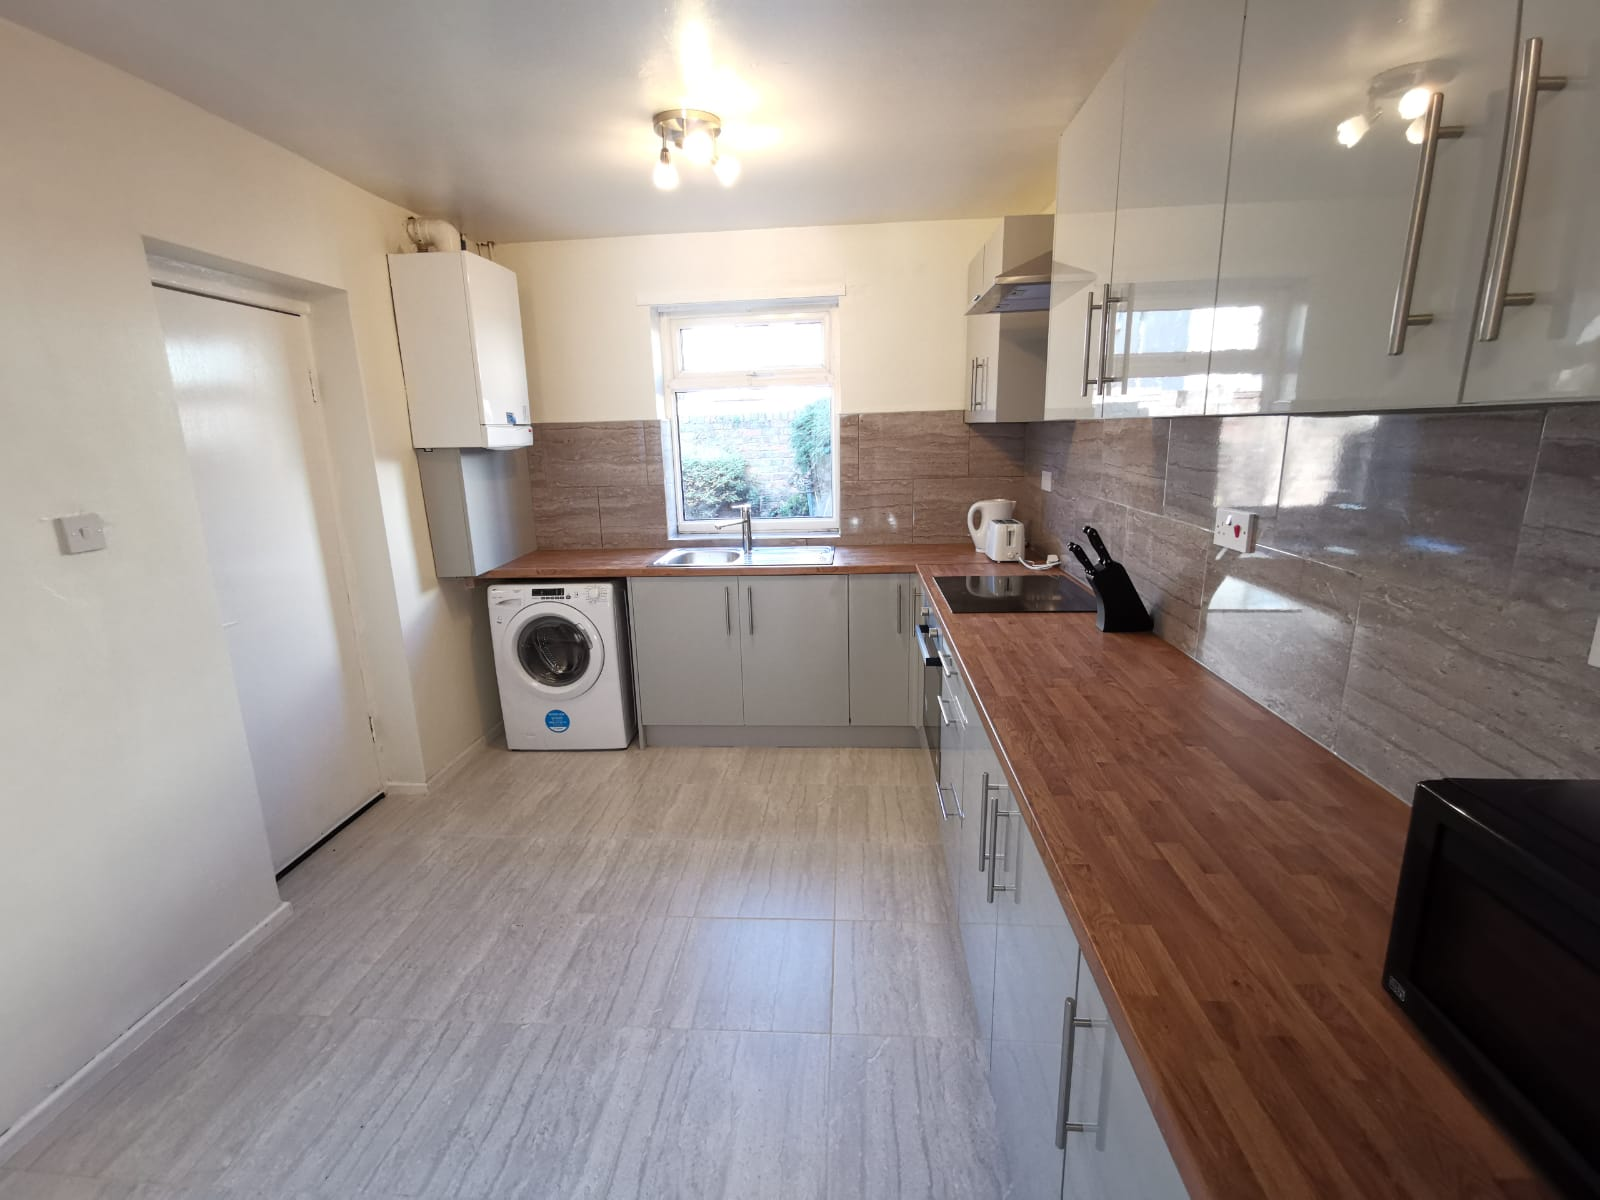 Lev Properties are proud to present these recently renovated 4 bedroom house to rent in L20